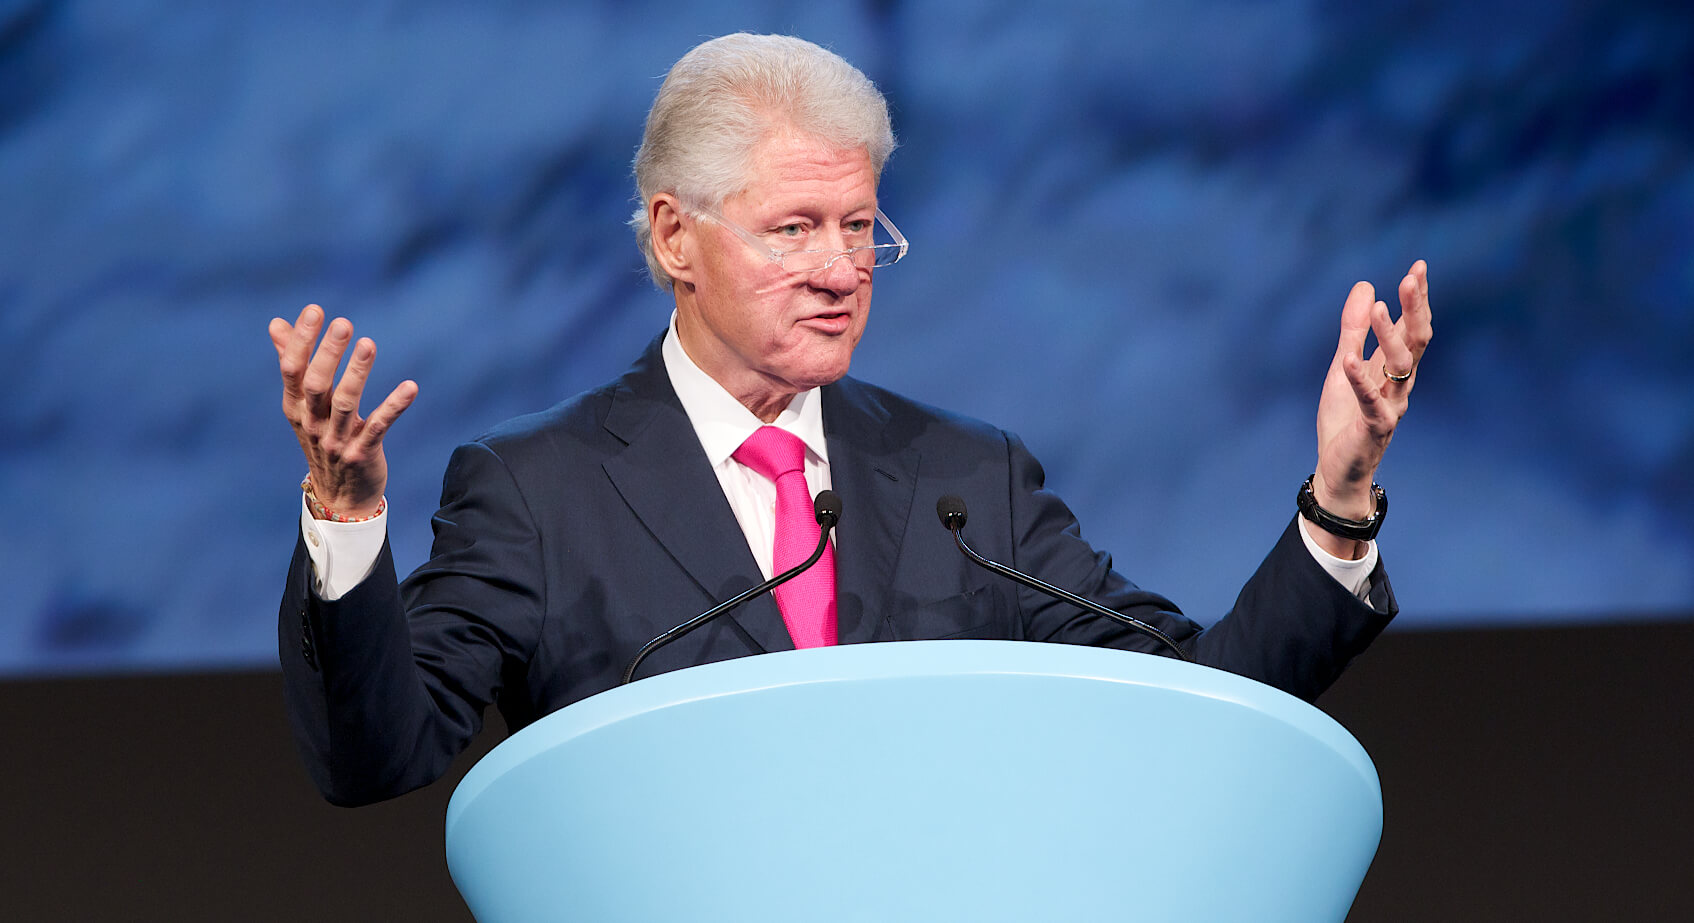 Creating the Eye on Earth Summit with Bill Clinton